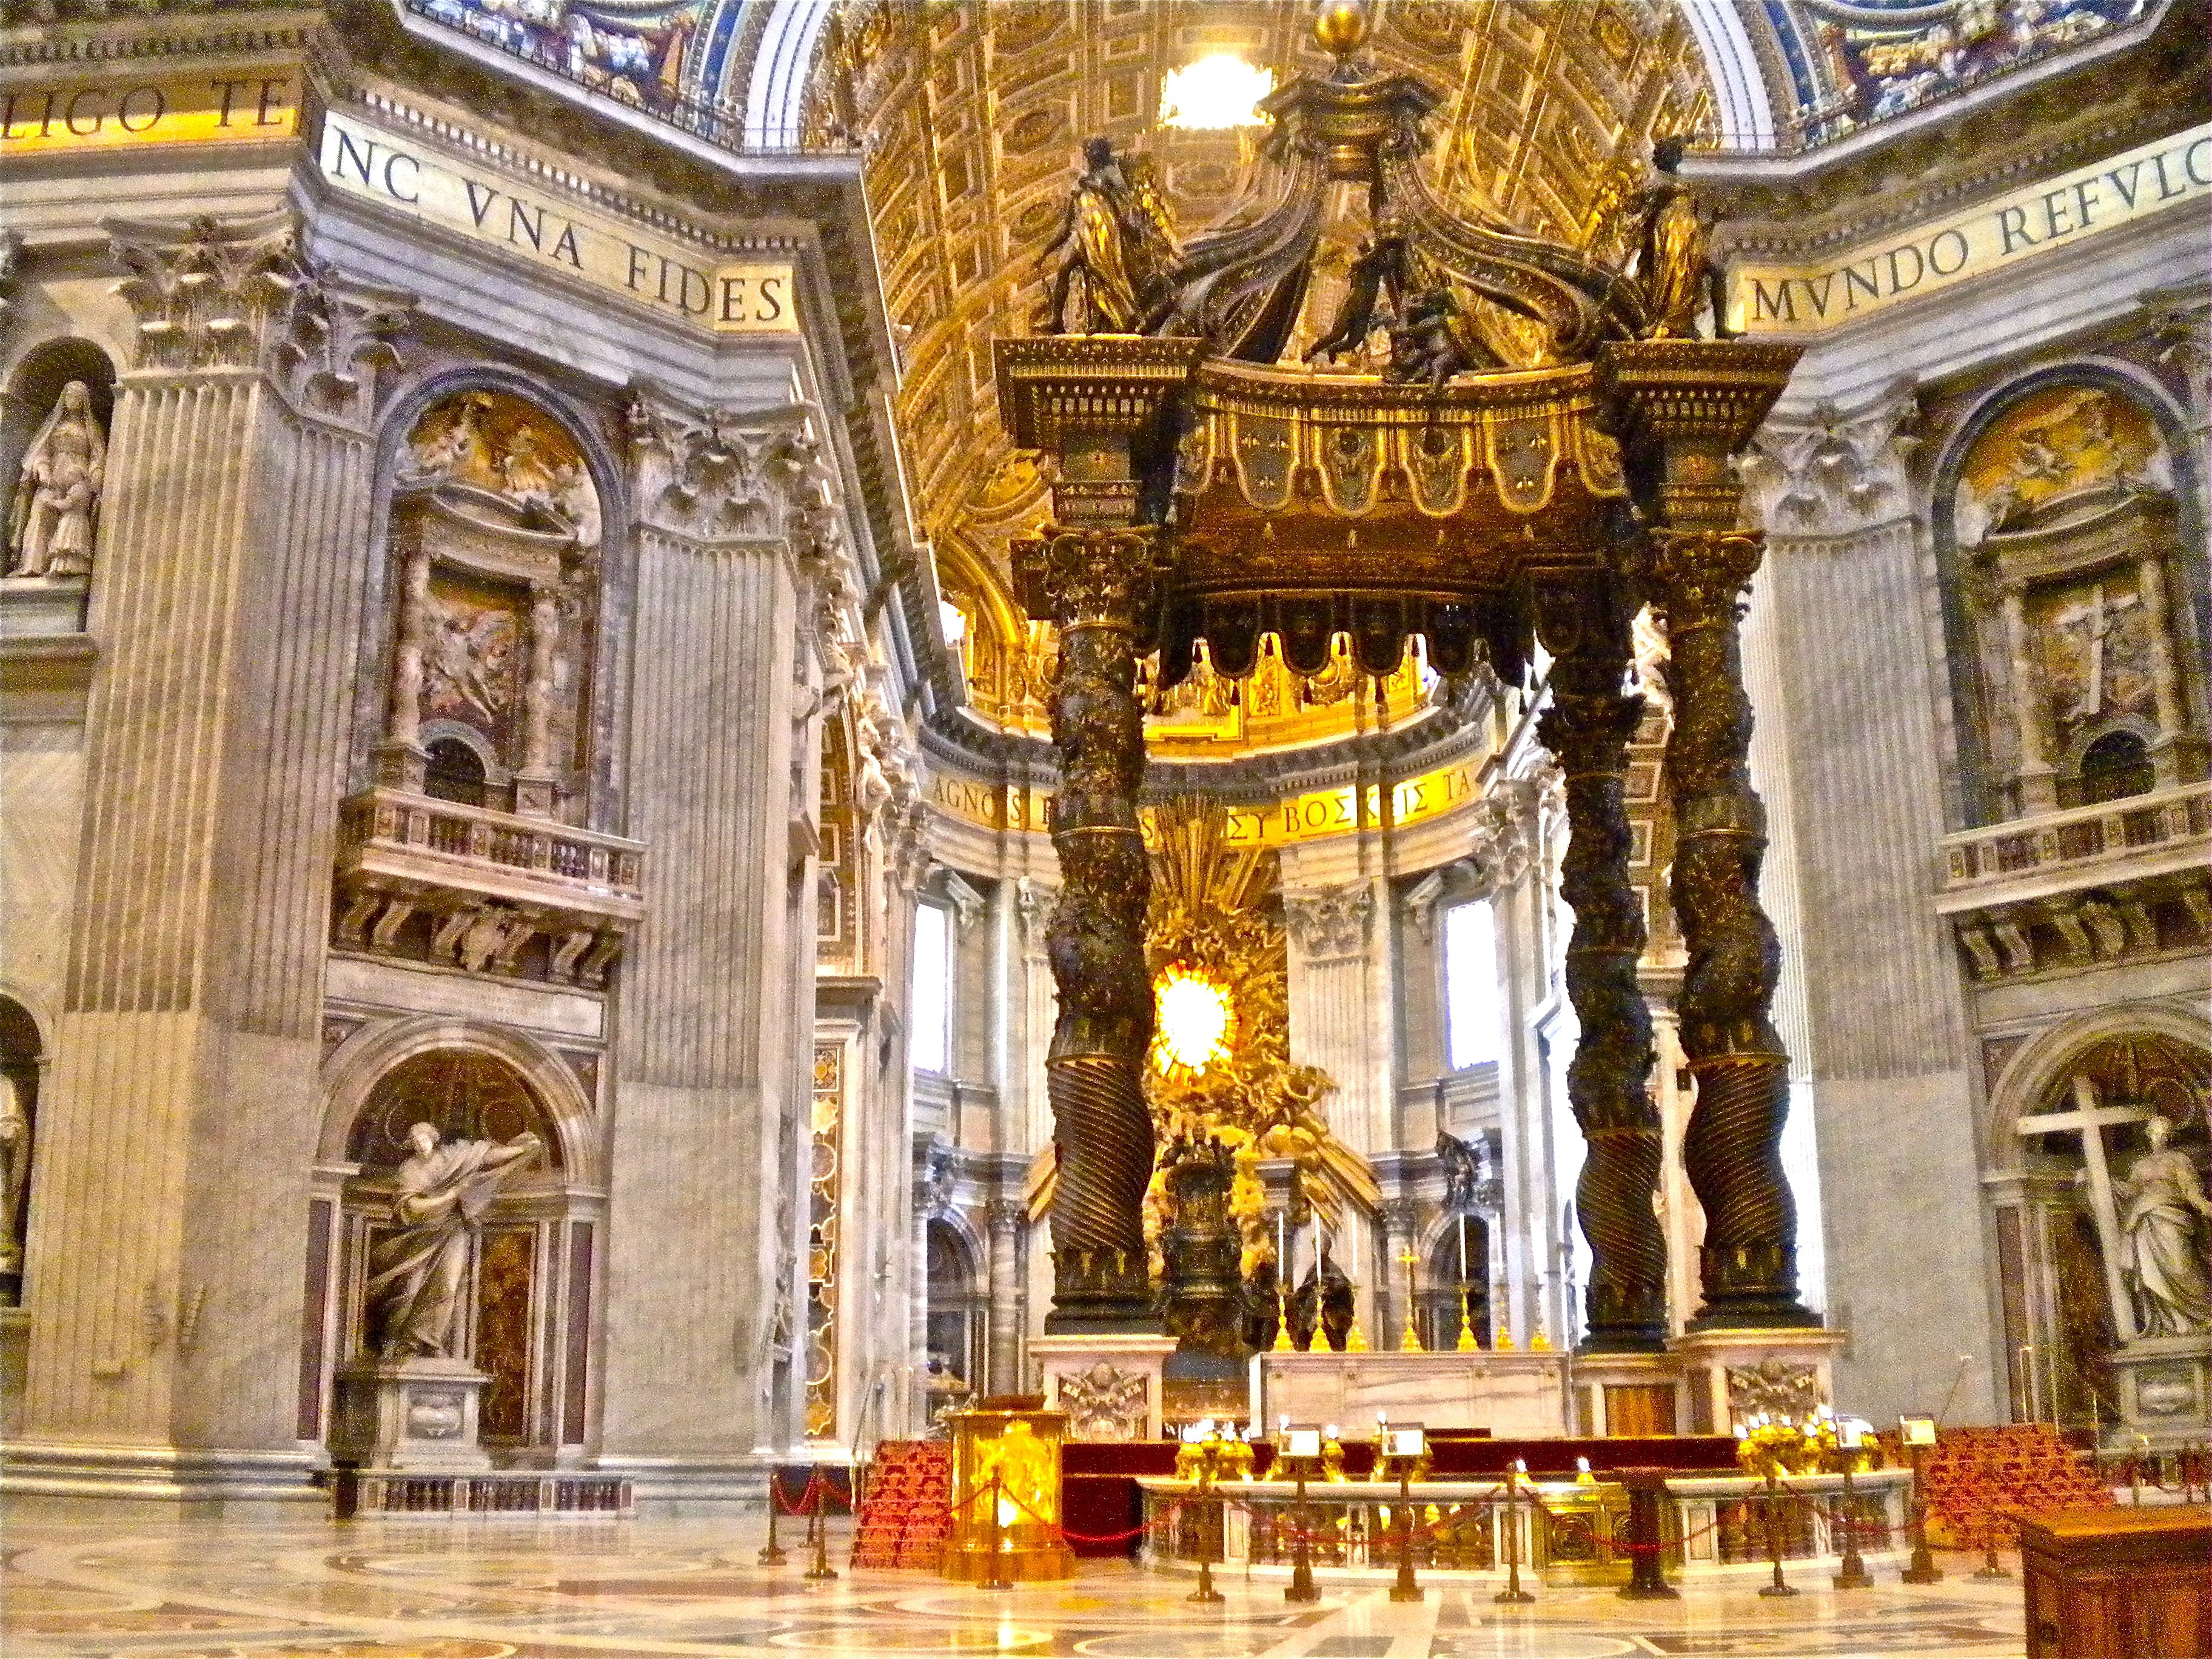 St. Peter's Baldachin (Italian baldacchino) is a large